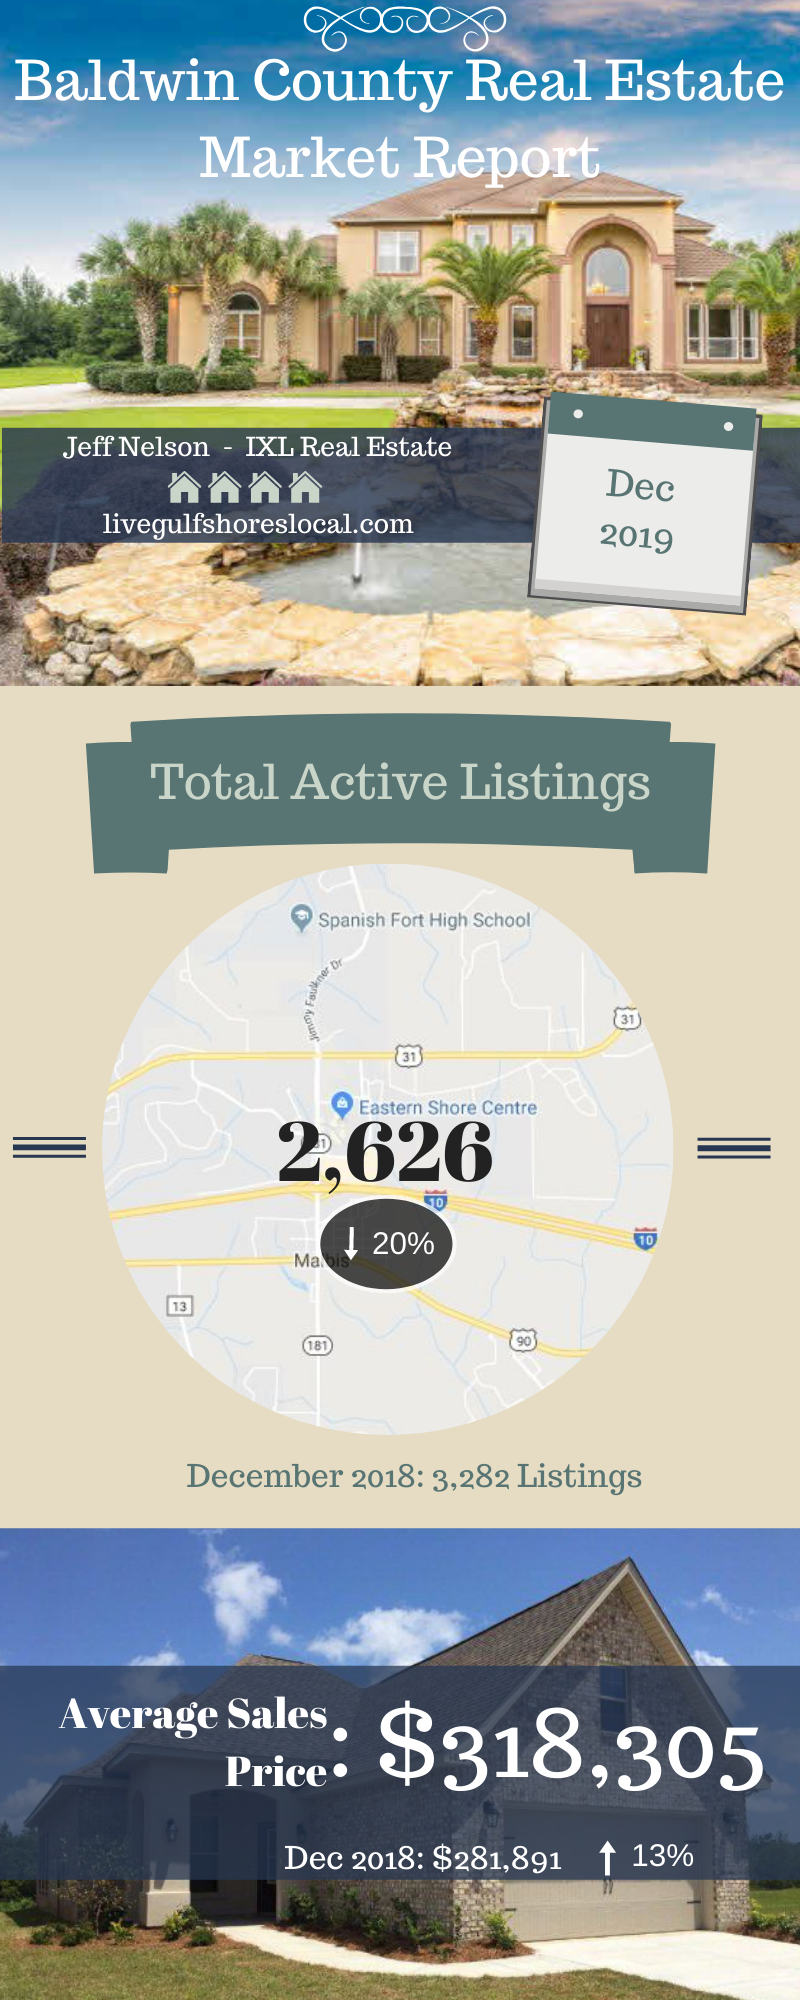 Baldwin County Real Estate Update Page 1 - Jan 2020